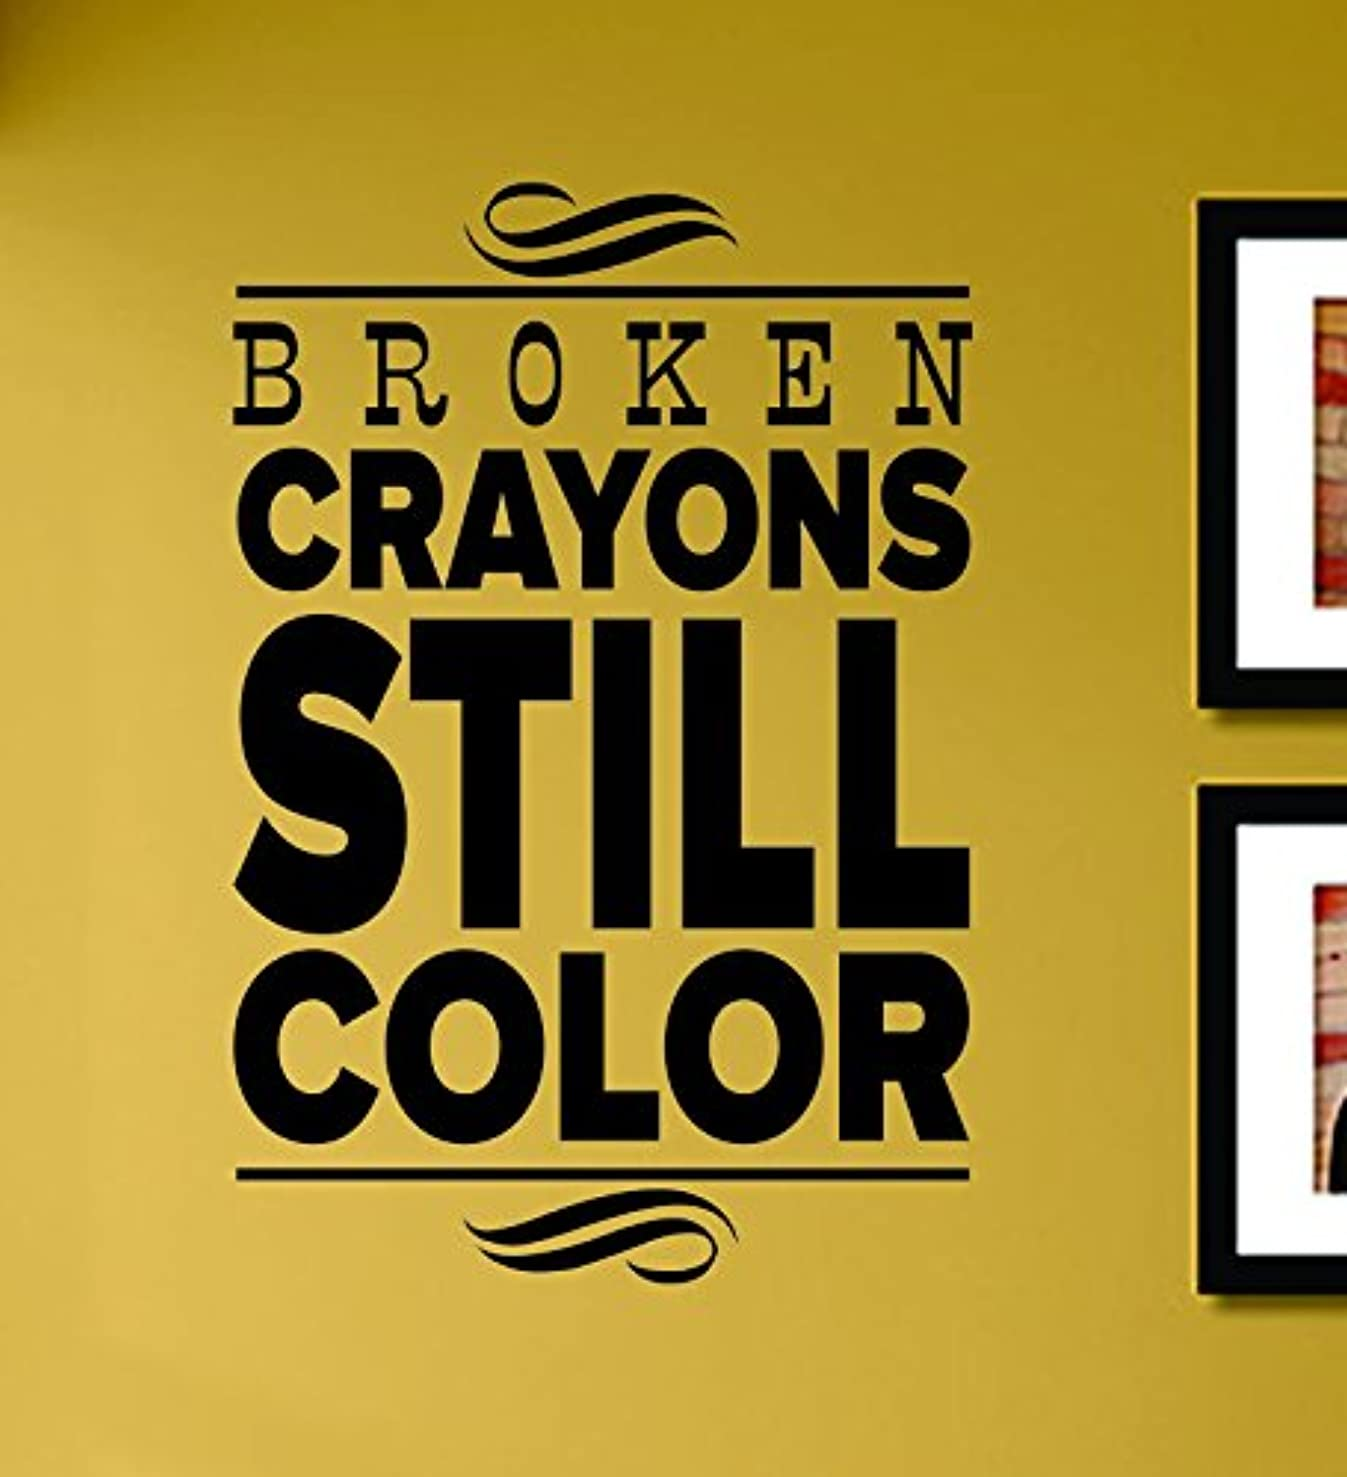 Broken Crayons Still Color Vinyl Wall Decals Quotes Sayings Words Art Decor Lettering Vinyl Wall Art Inspirational Uplifting